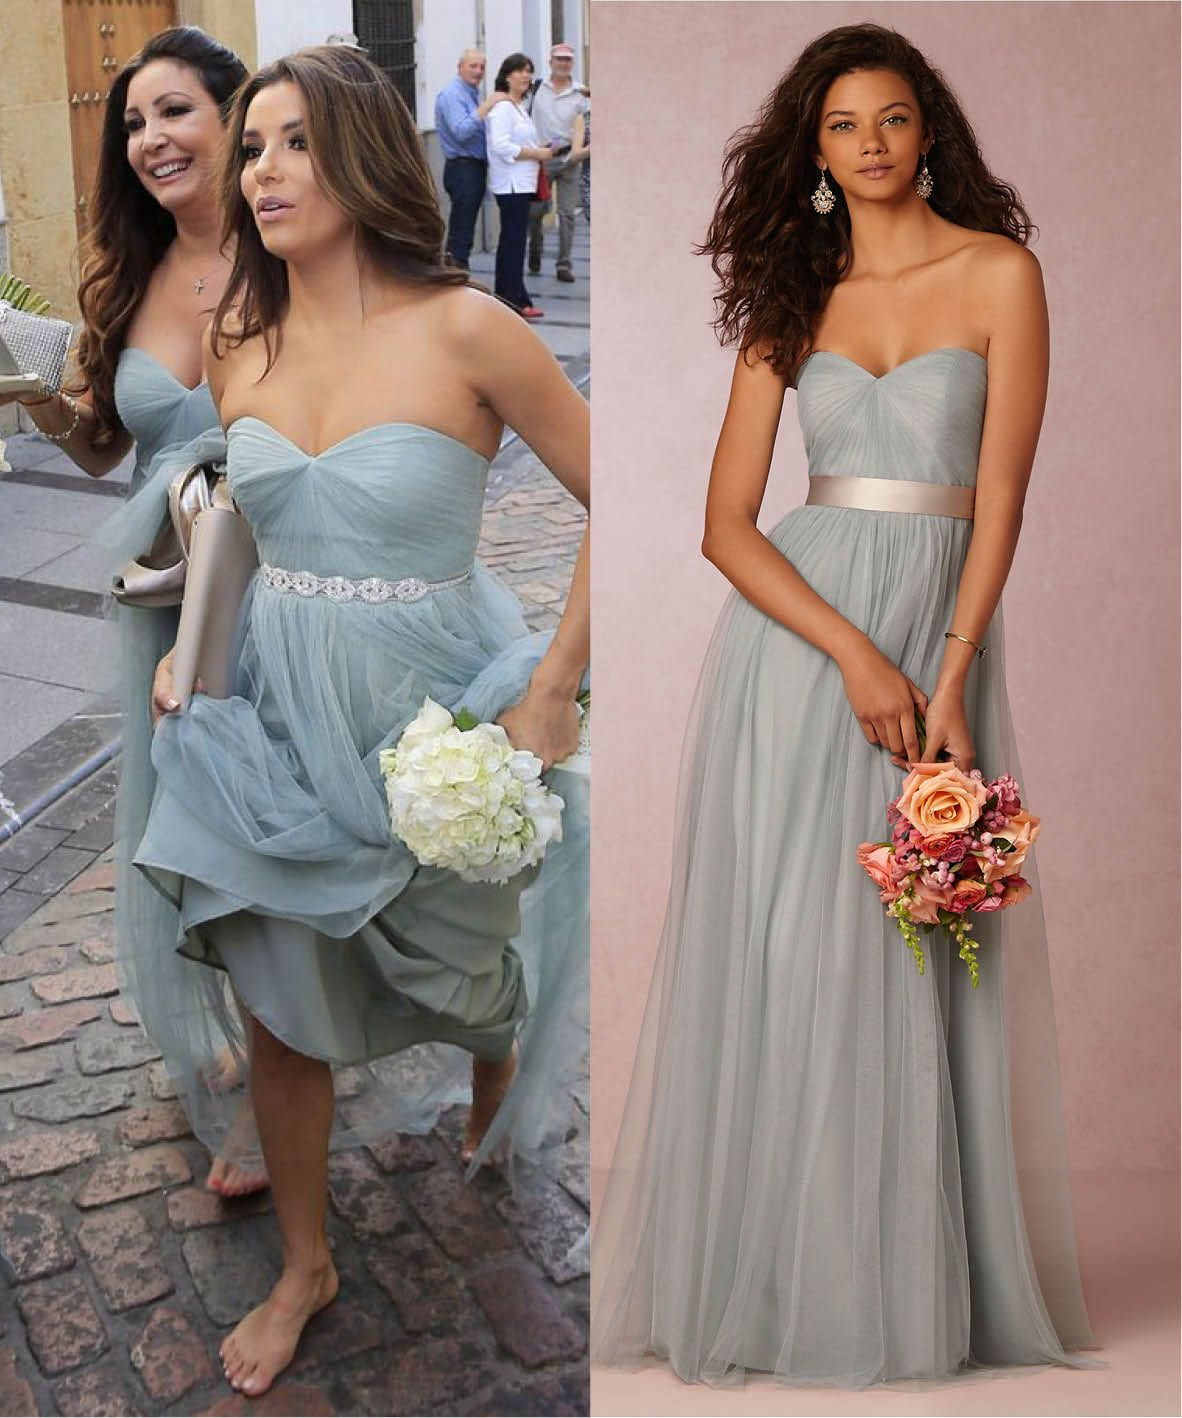 Celebrity bridesmaids steal their style cat wedding winter eva longoria as bridesmaid and bhldn dress celebrity bridesmaid more ombrellifo Images